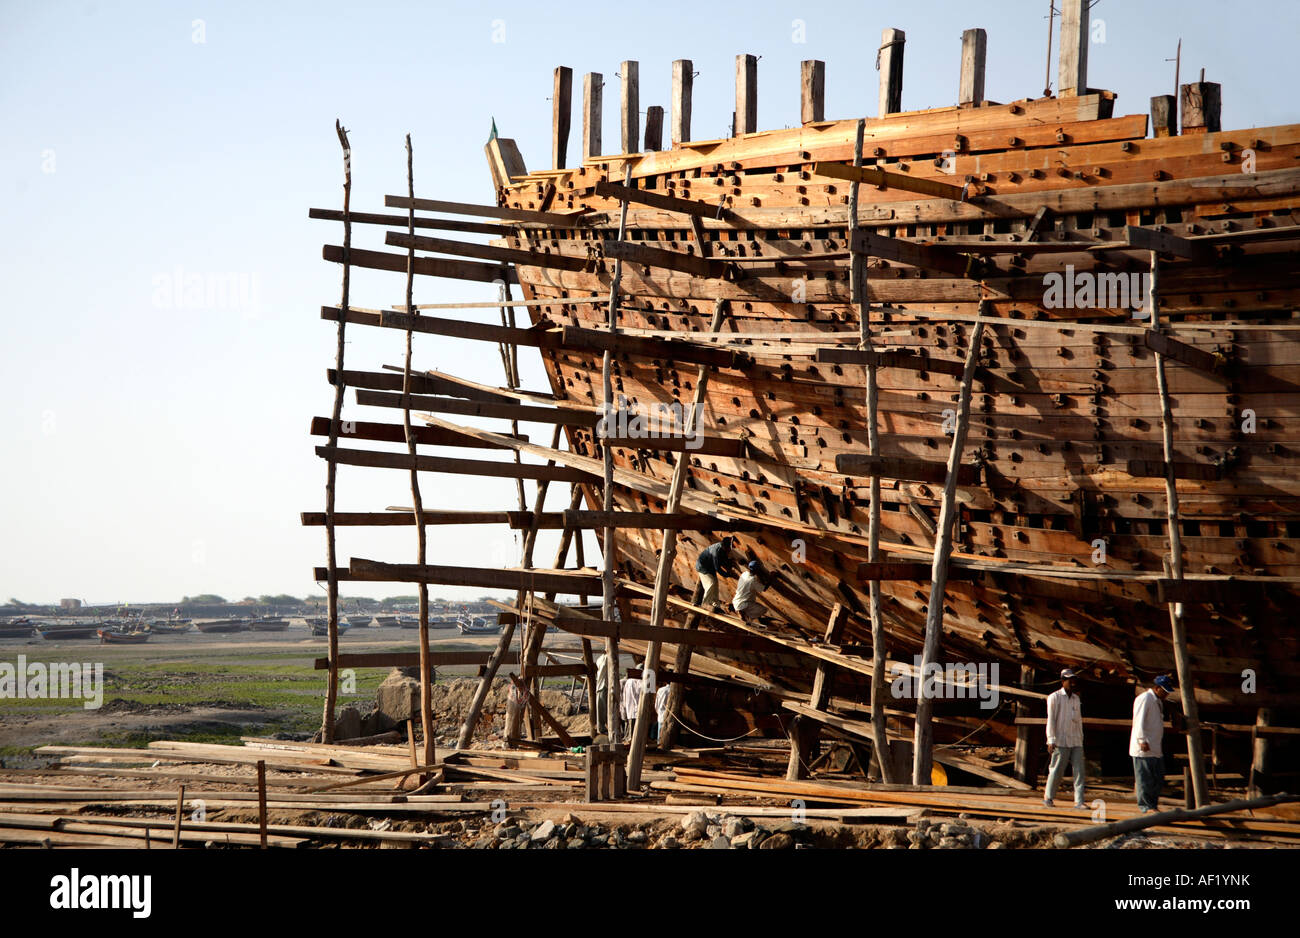 Wooden Shipbuilding Yard Mandvi Kutch Gujarat India